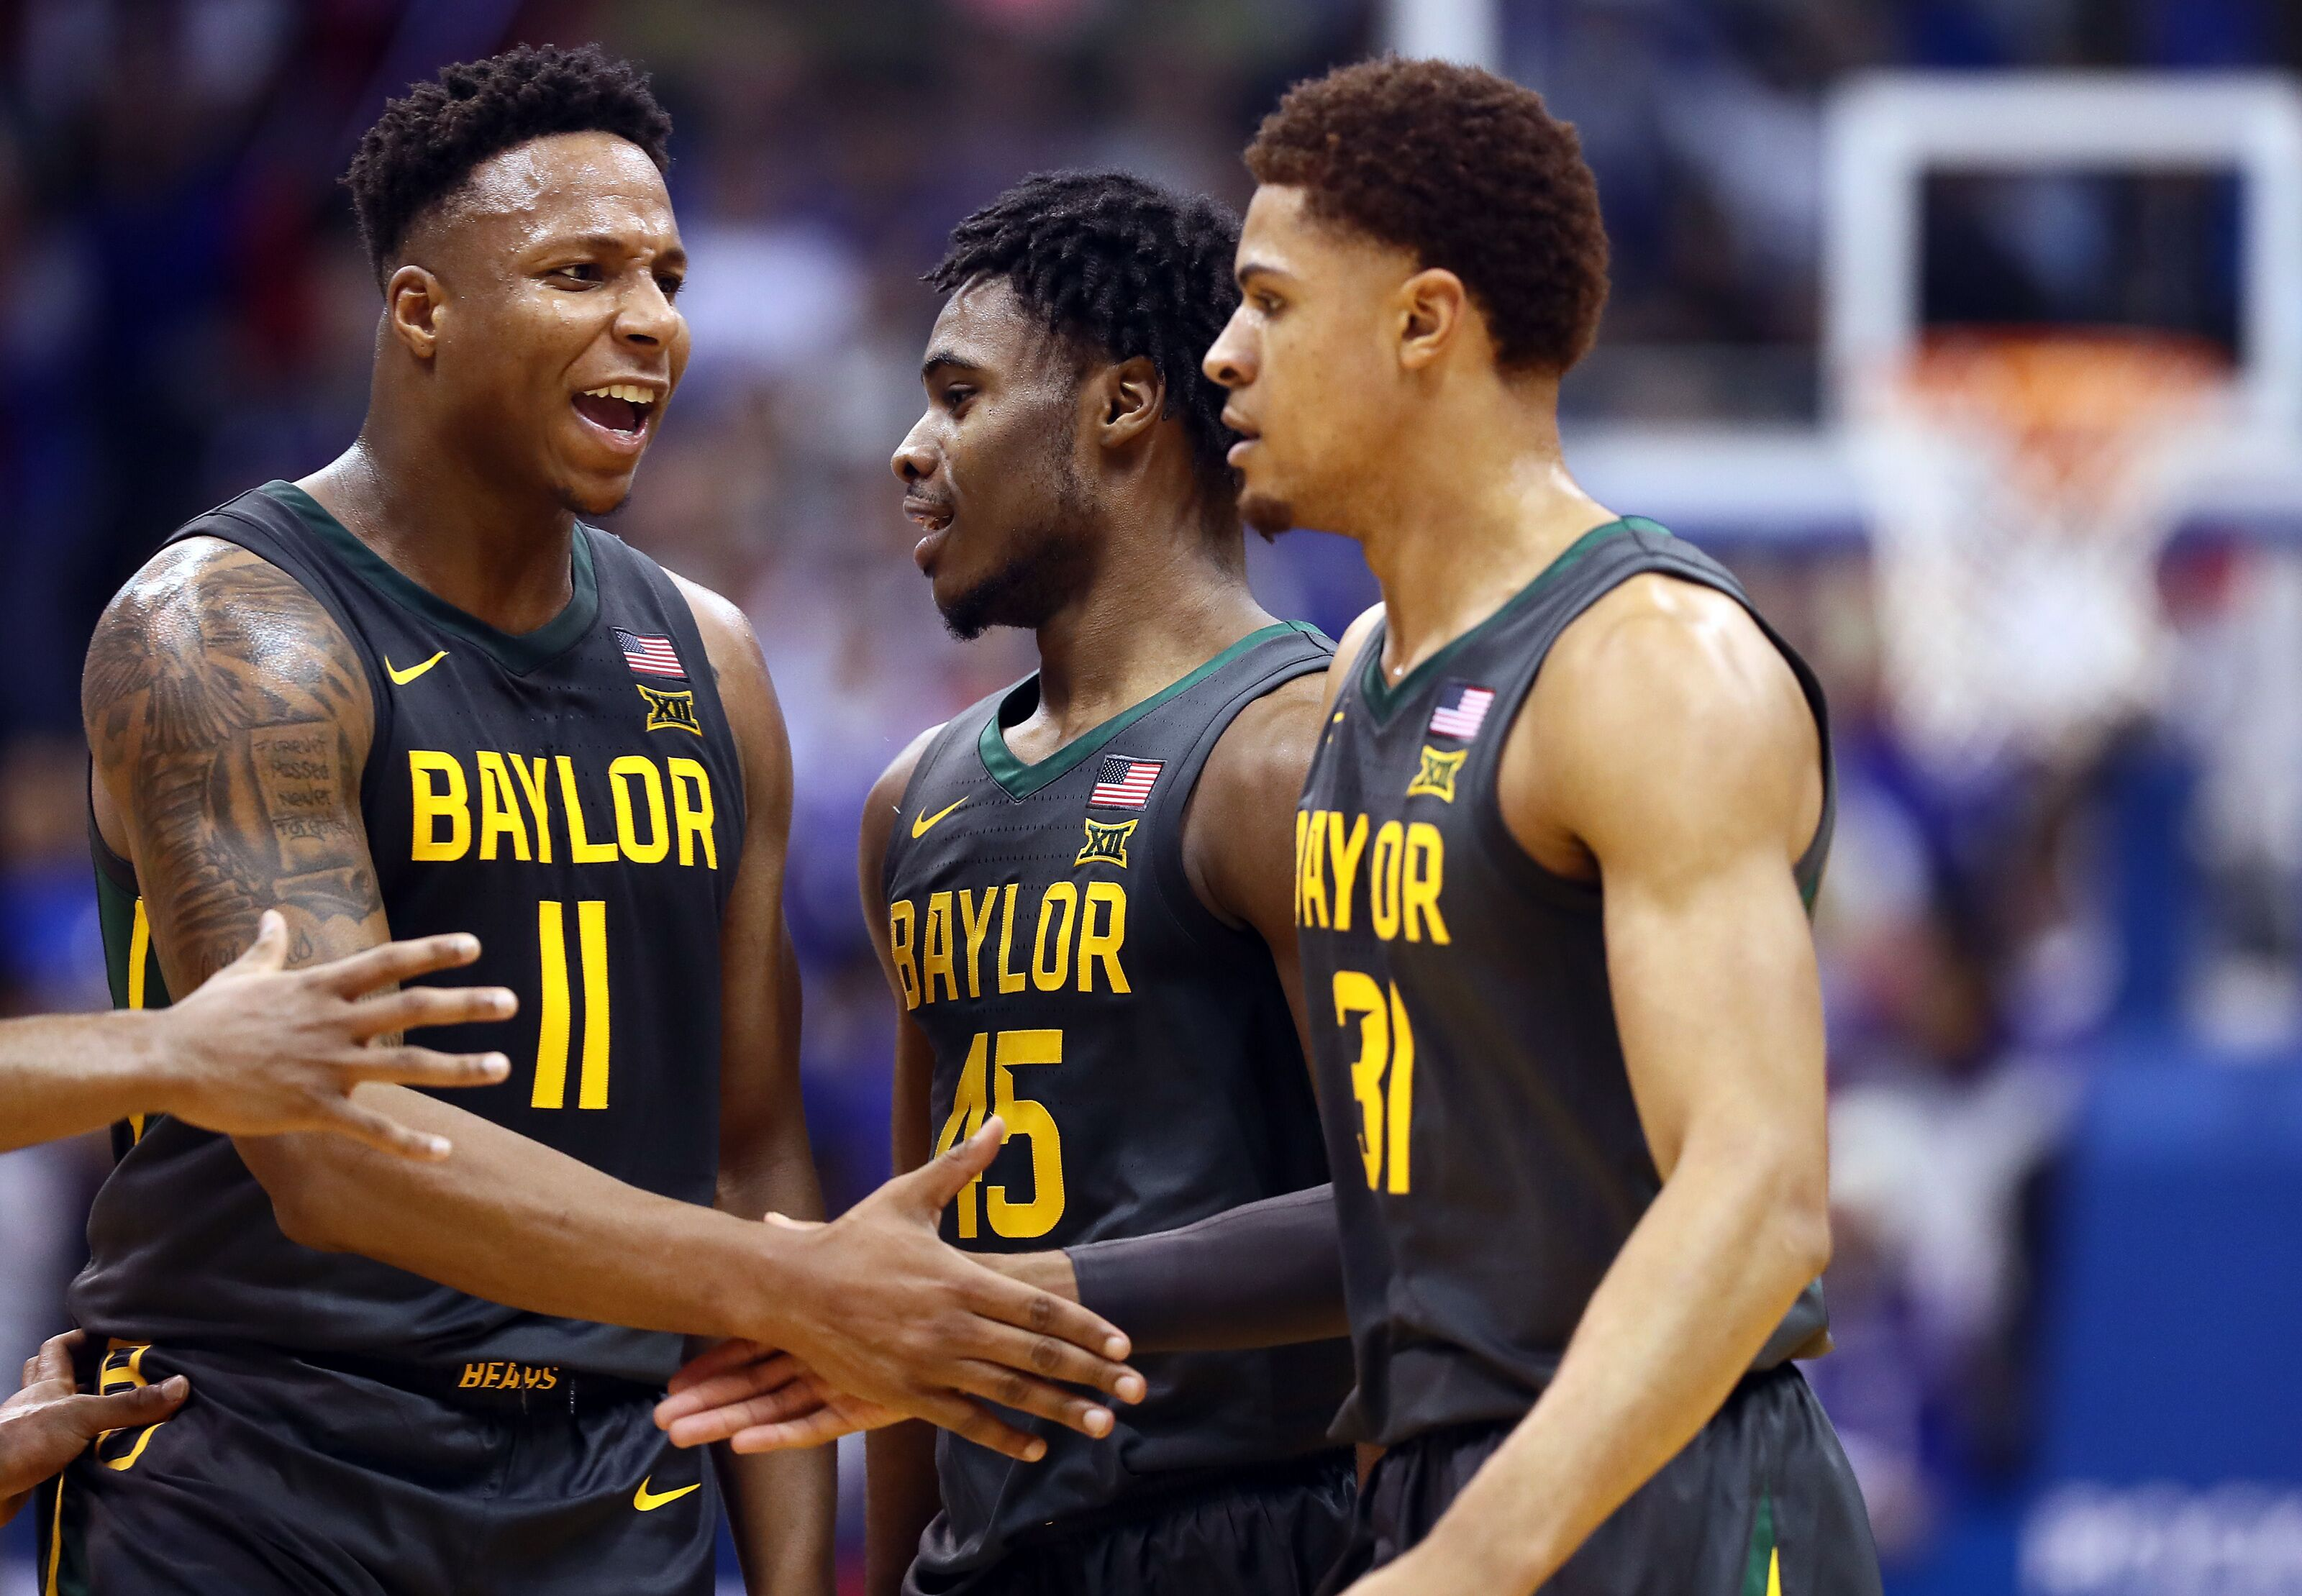 College Basketball Rankings Does Baylor Deserve No 1 Spot